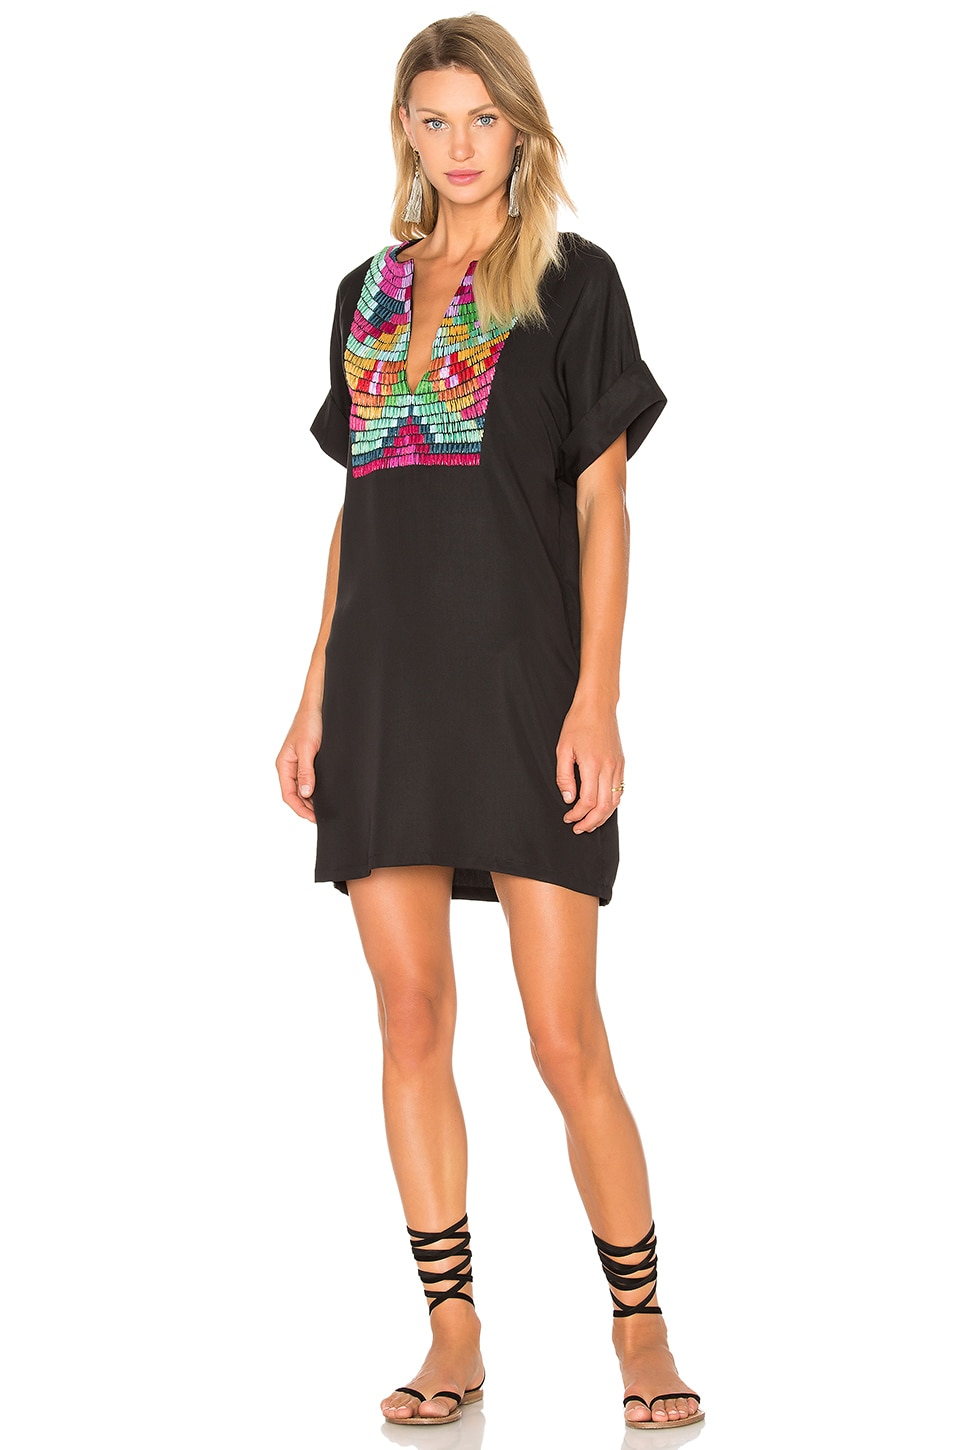 Radial Embroidery Tunic Dress by Mara Hoffman